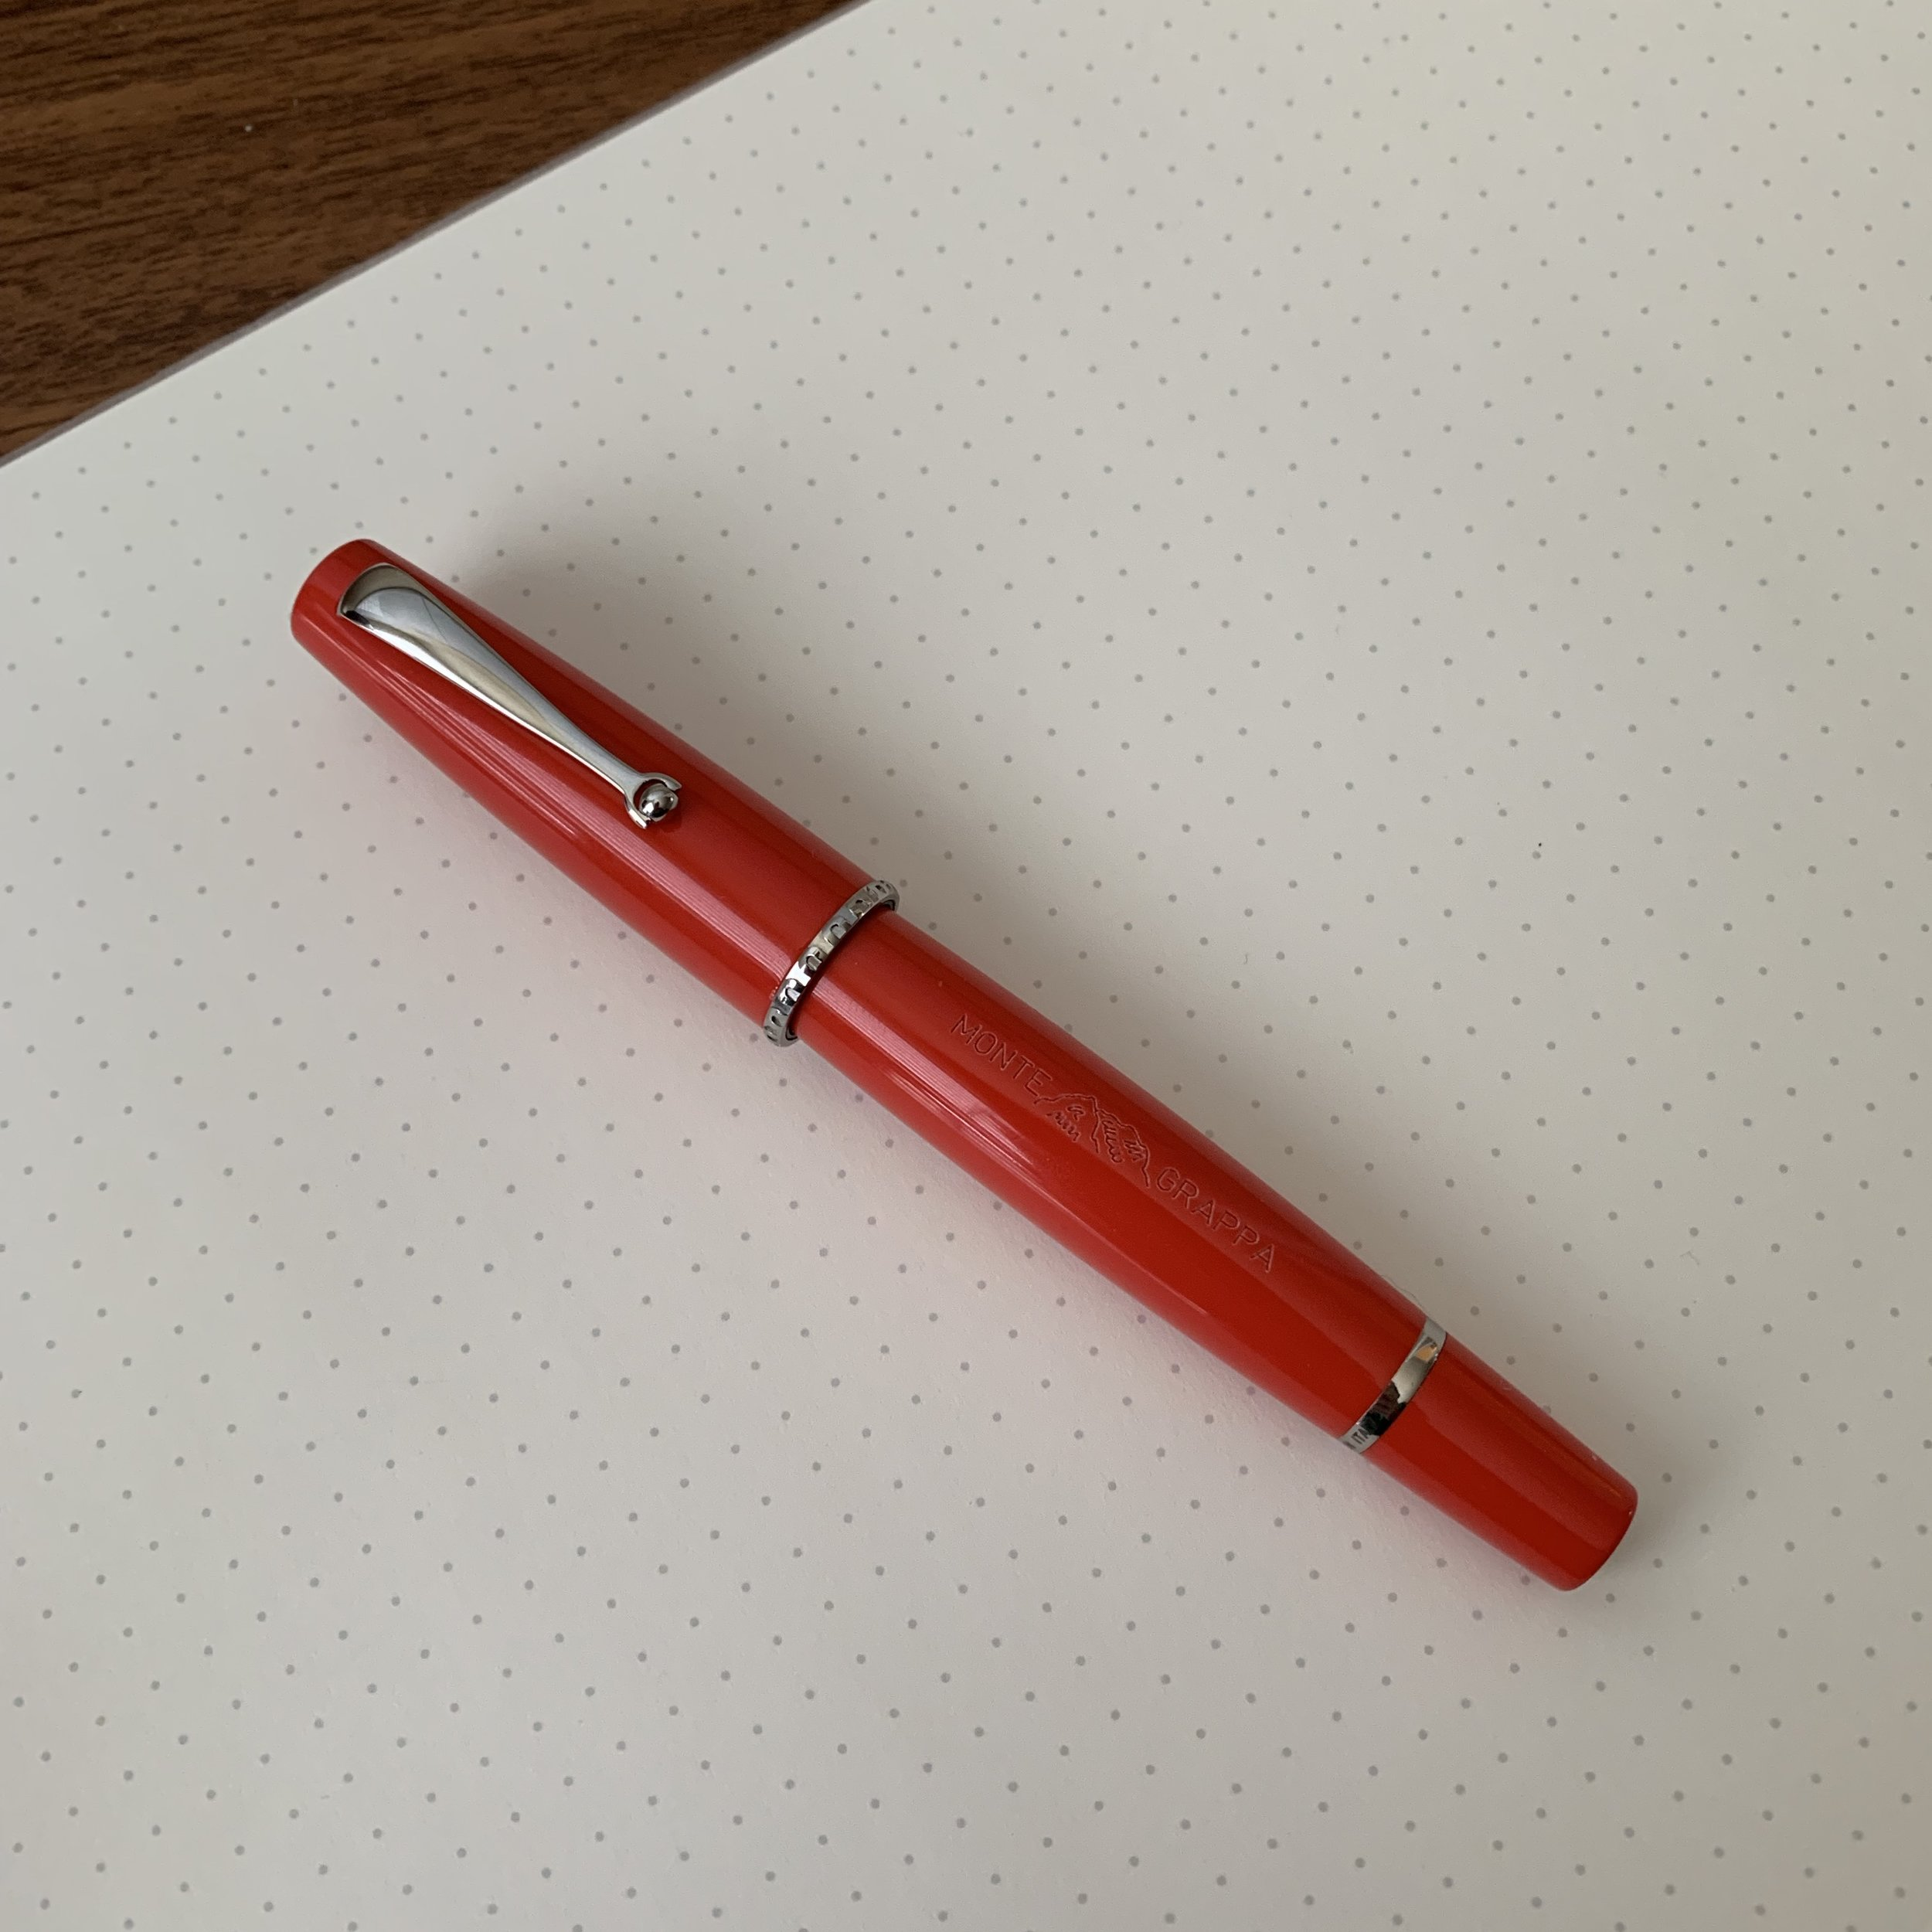 Montegrappa-Monte-Grappa-Fountain-Pen